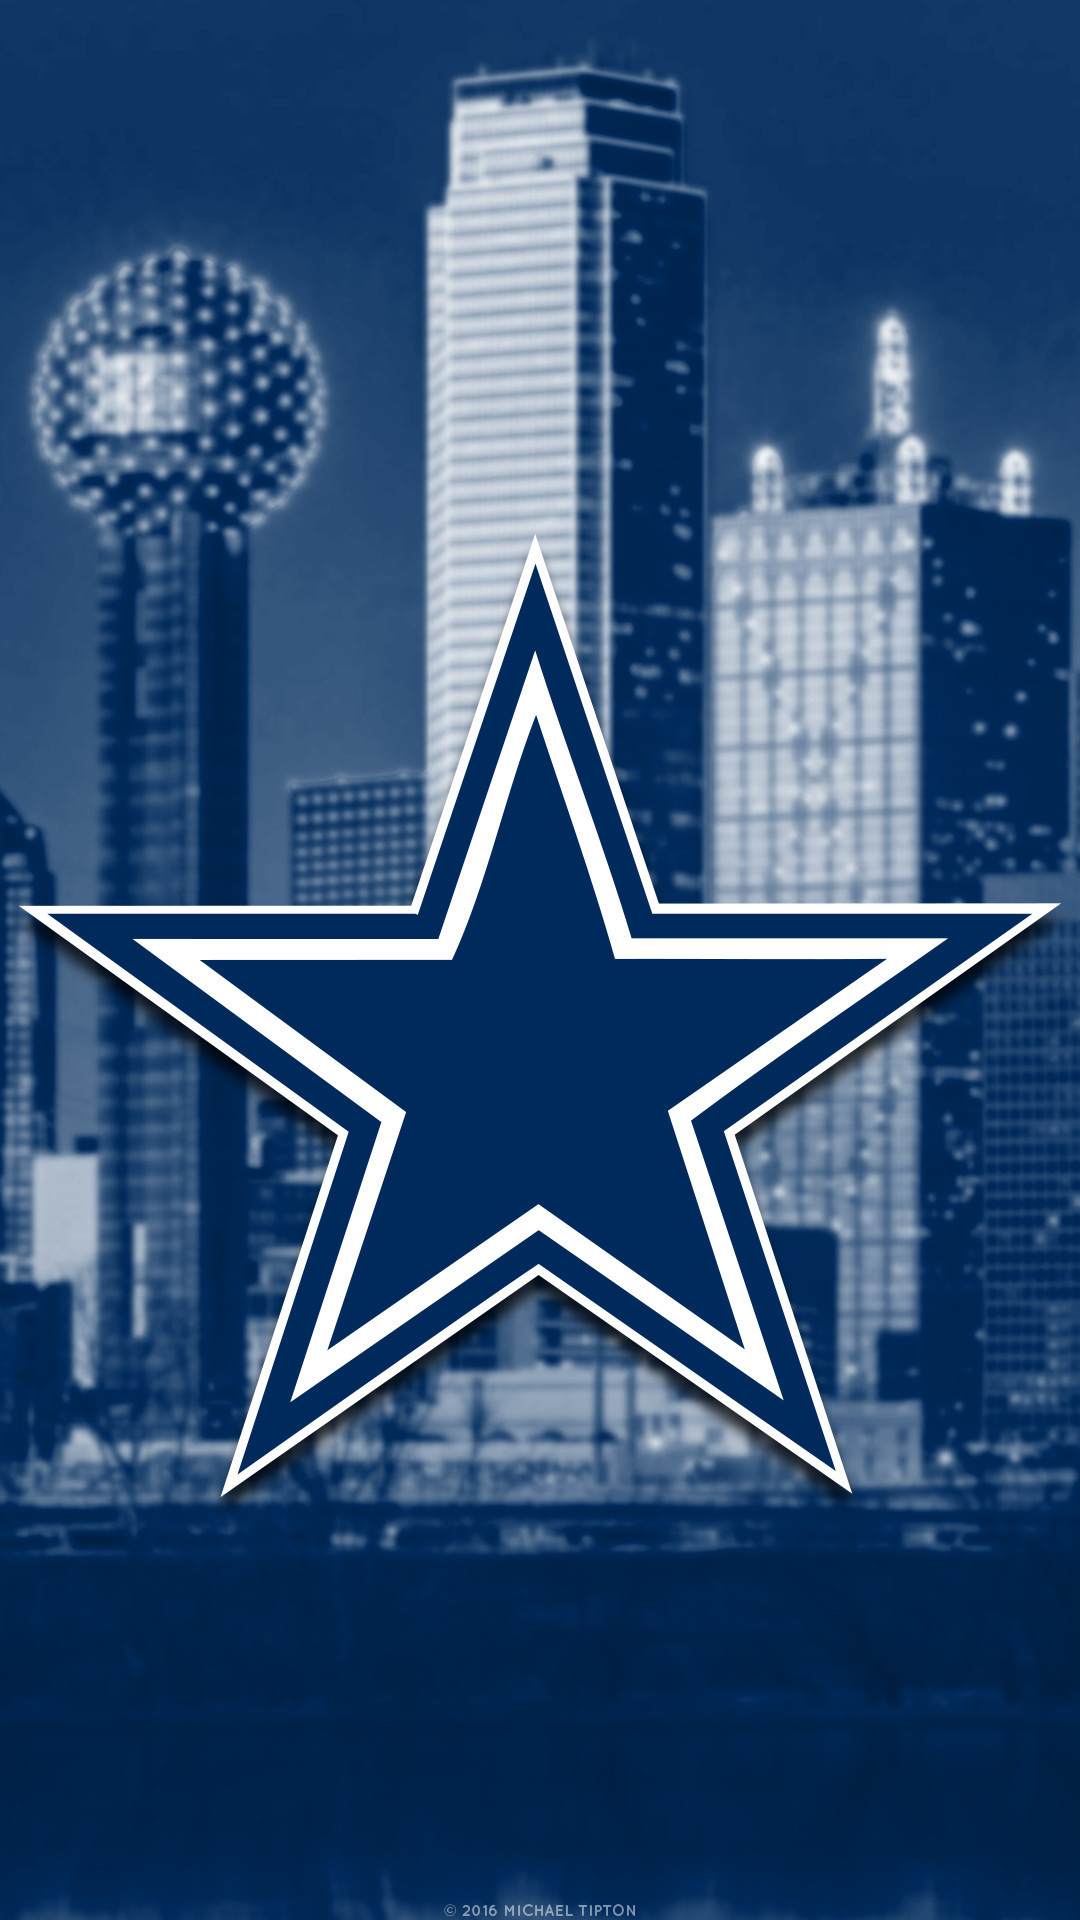 1080x1920 1946x1142 free images dallas cowboy wallpaper hd download high definiton  wallpapers windows 10 backgrounds amazing colourful free computer wallpapers  ...